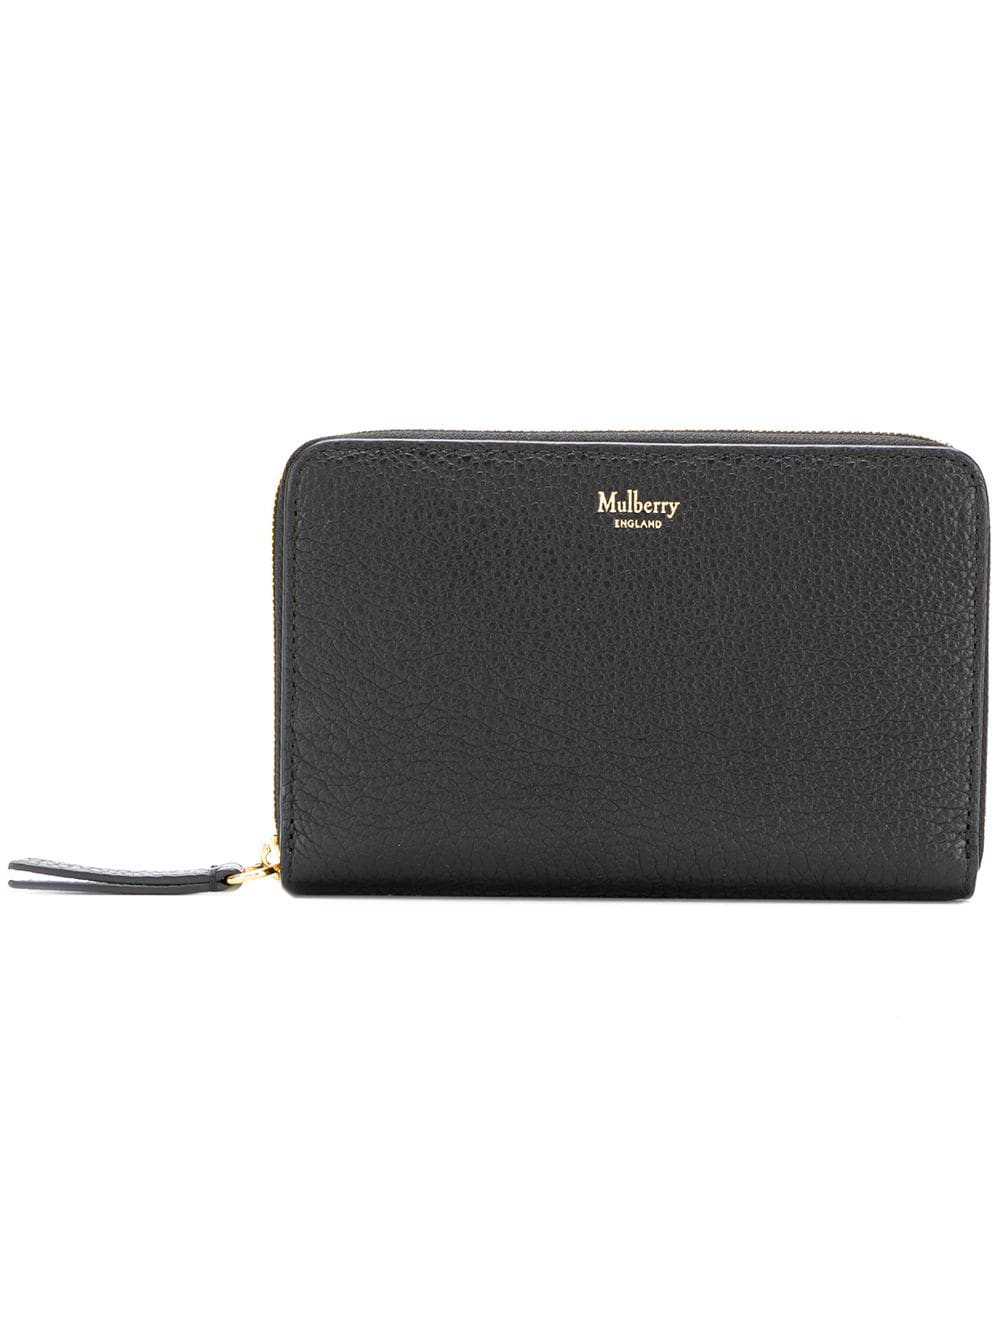 f770681615 Mulberry Zipped Wallet - Black | ModeSens